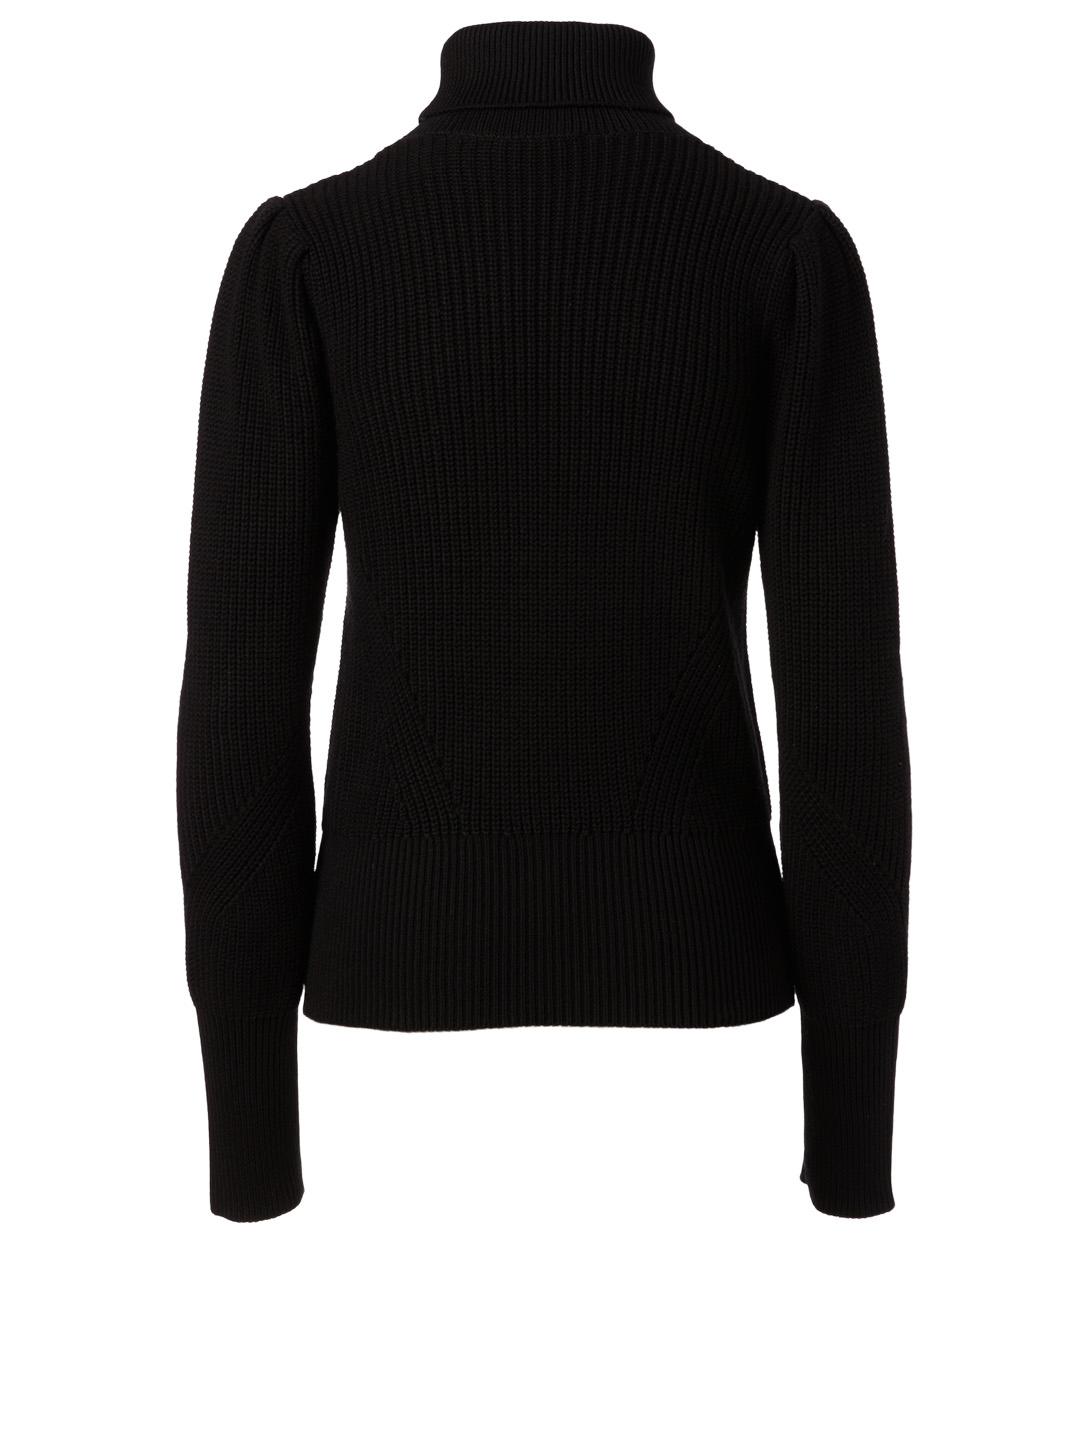 FRAME Cotton And Cashmere Turtleneck Sweater Women's Black